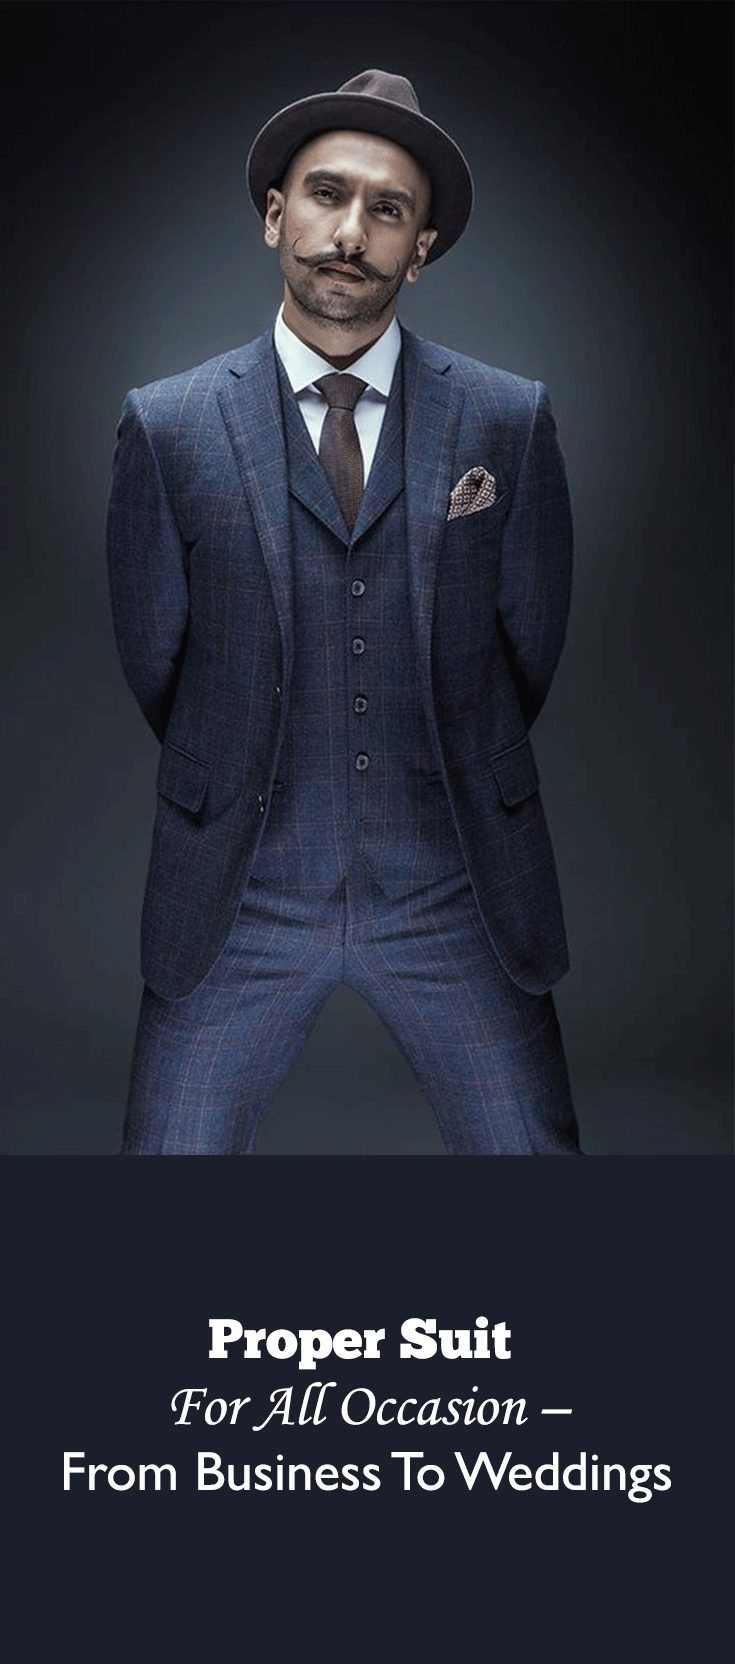 Proper Suit For All Occasion – From Business To Weddings